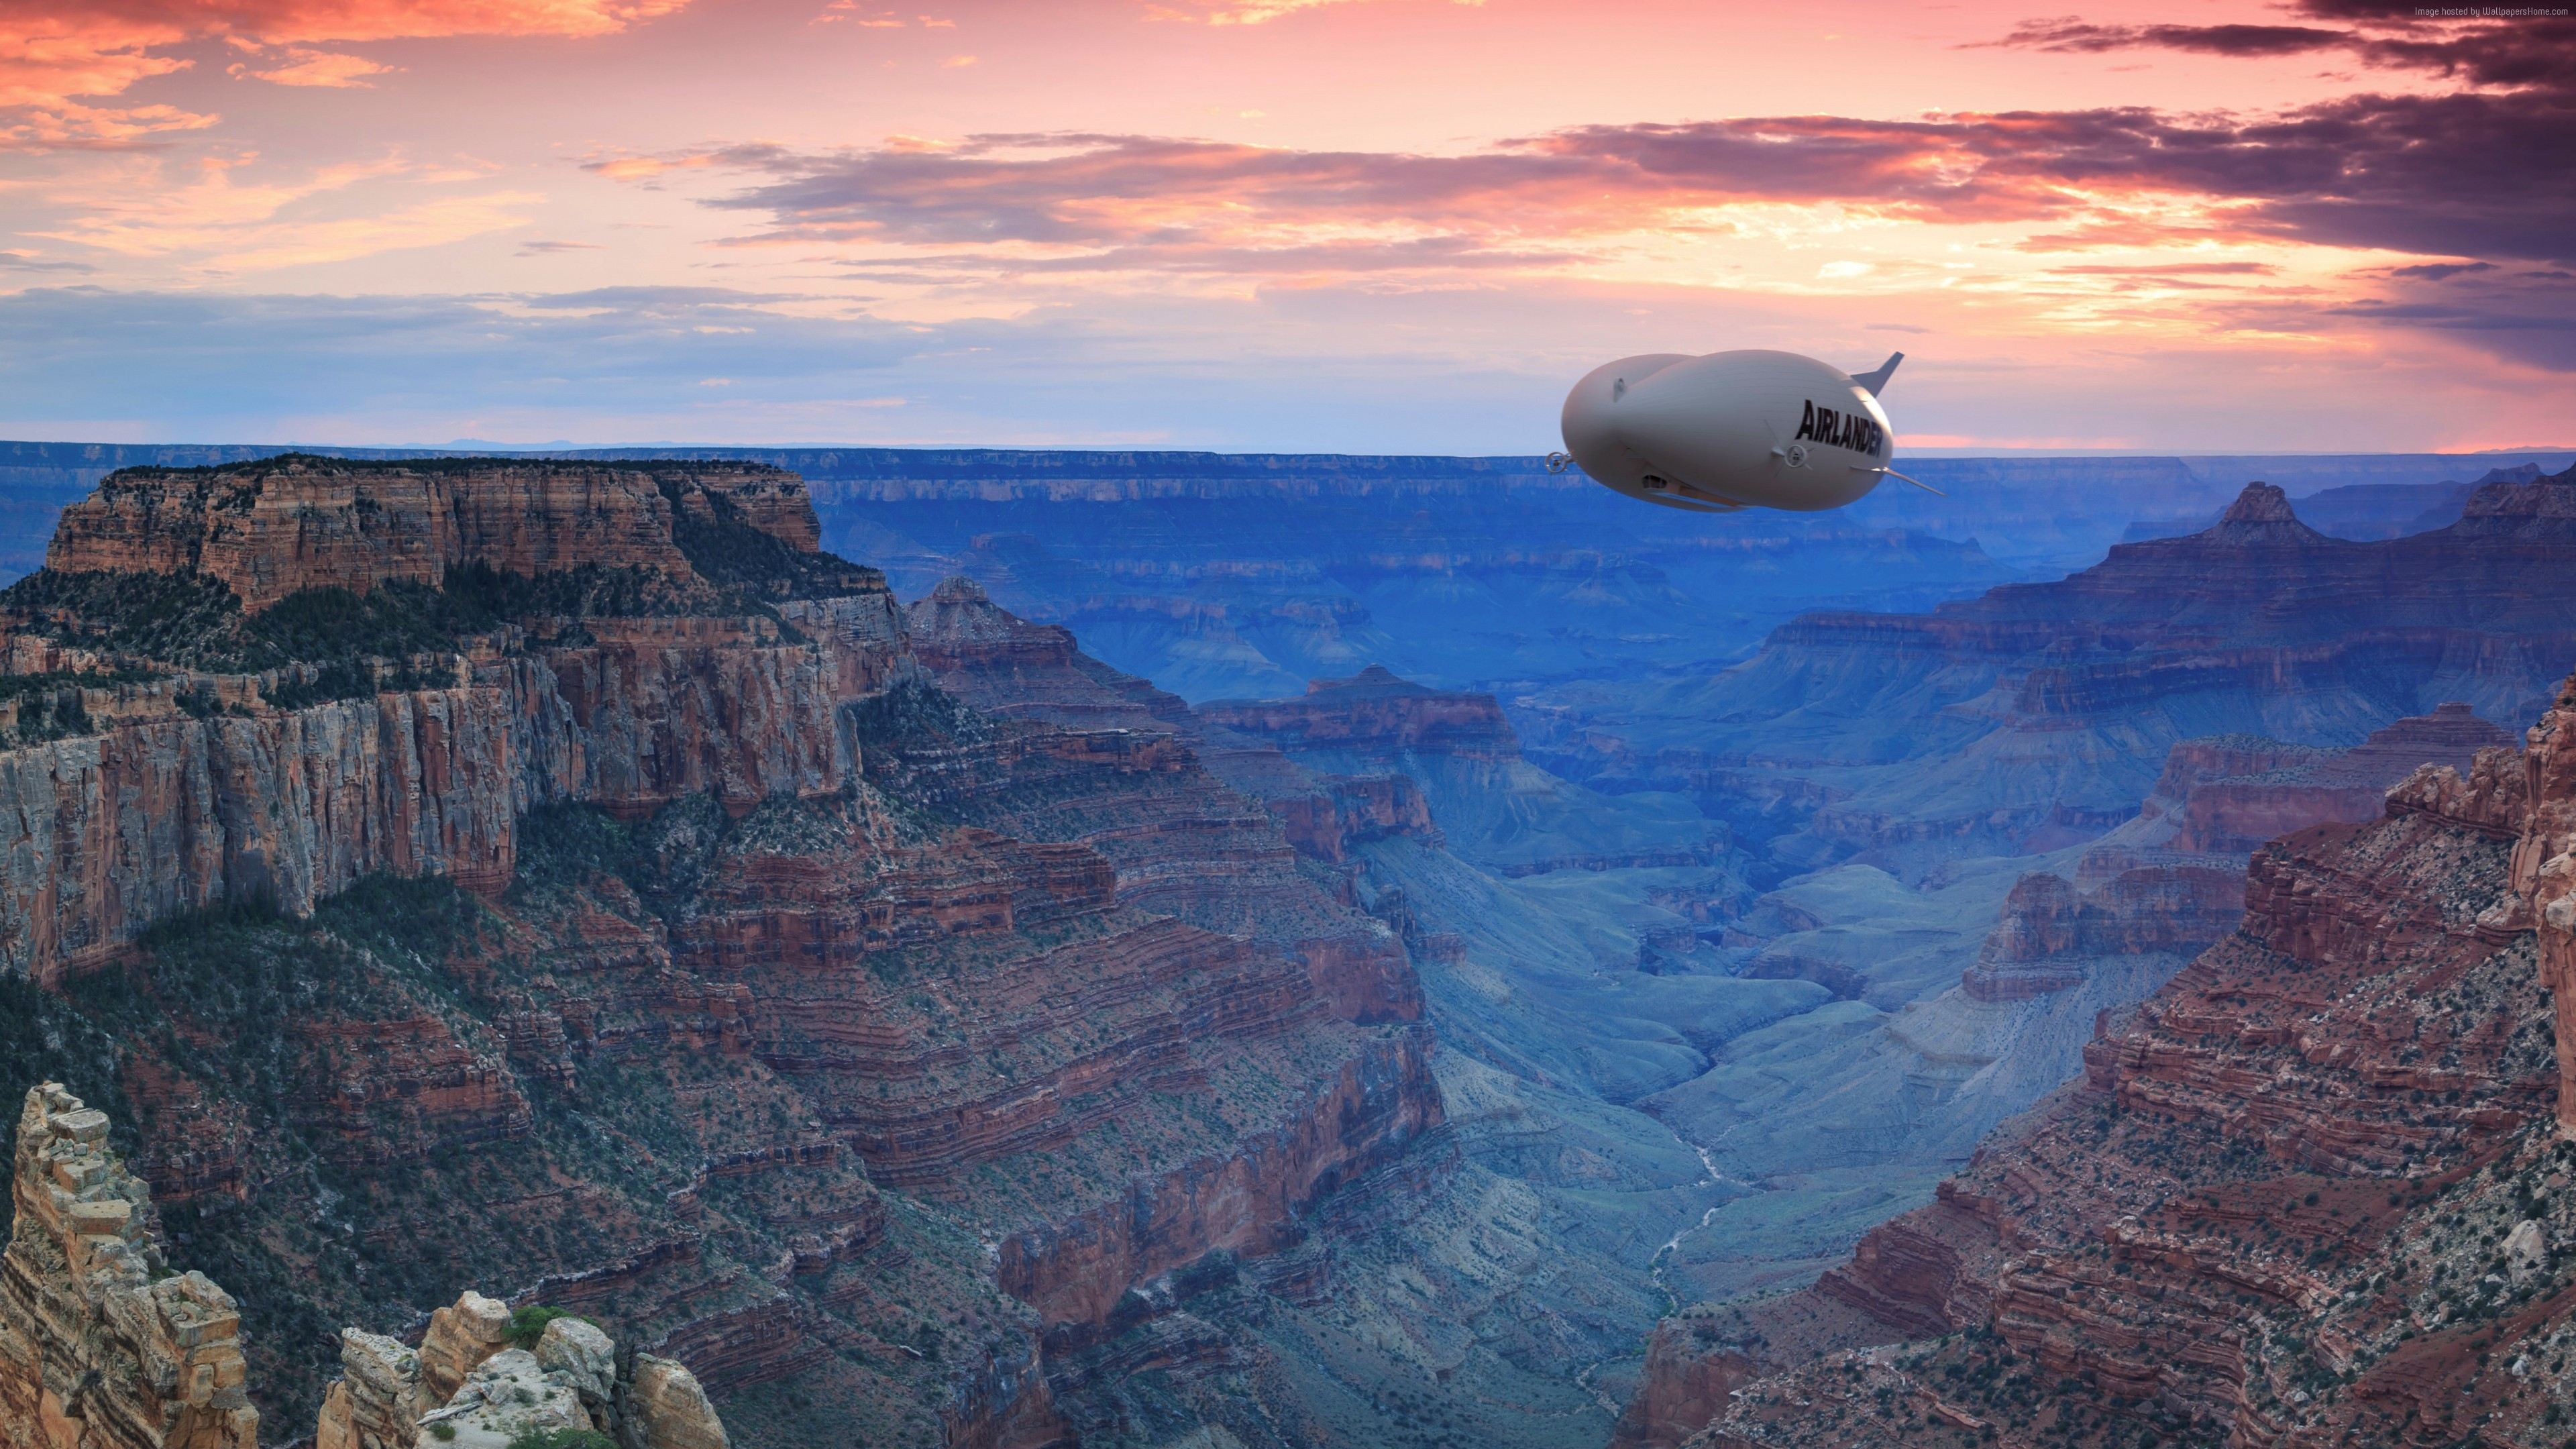 Wallpaper Airlander 10, Hybrid Air, Vehicles HAV 304 Airlander, U.S. Air Force, Military